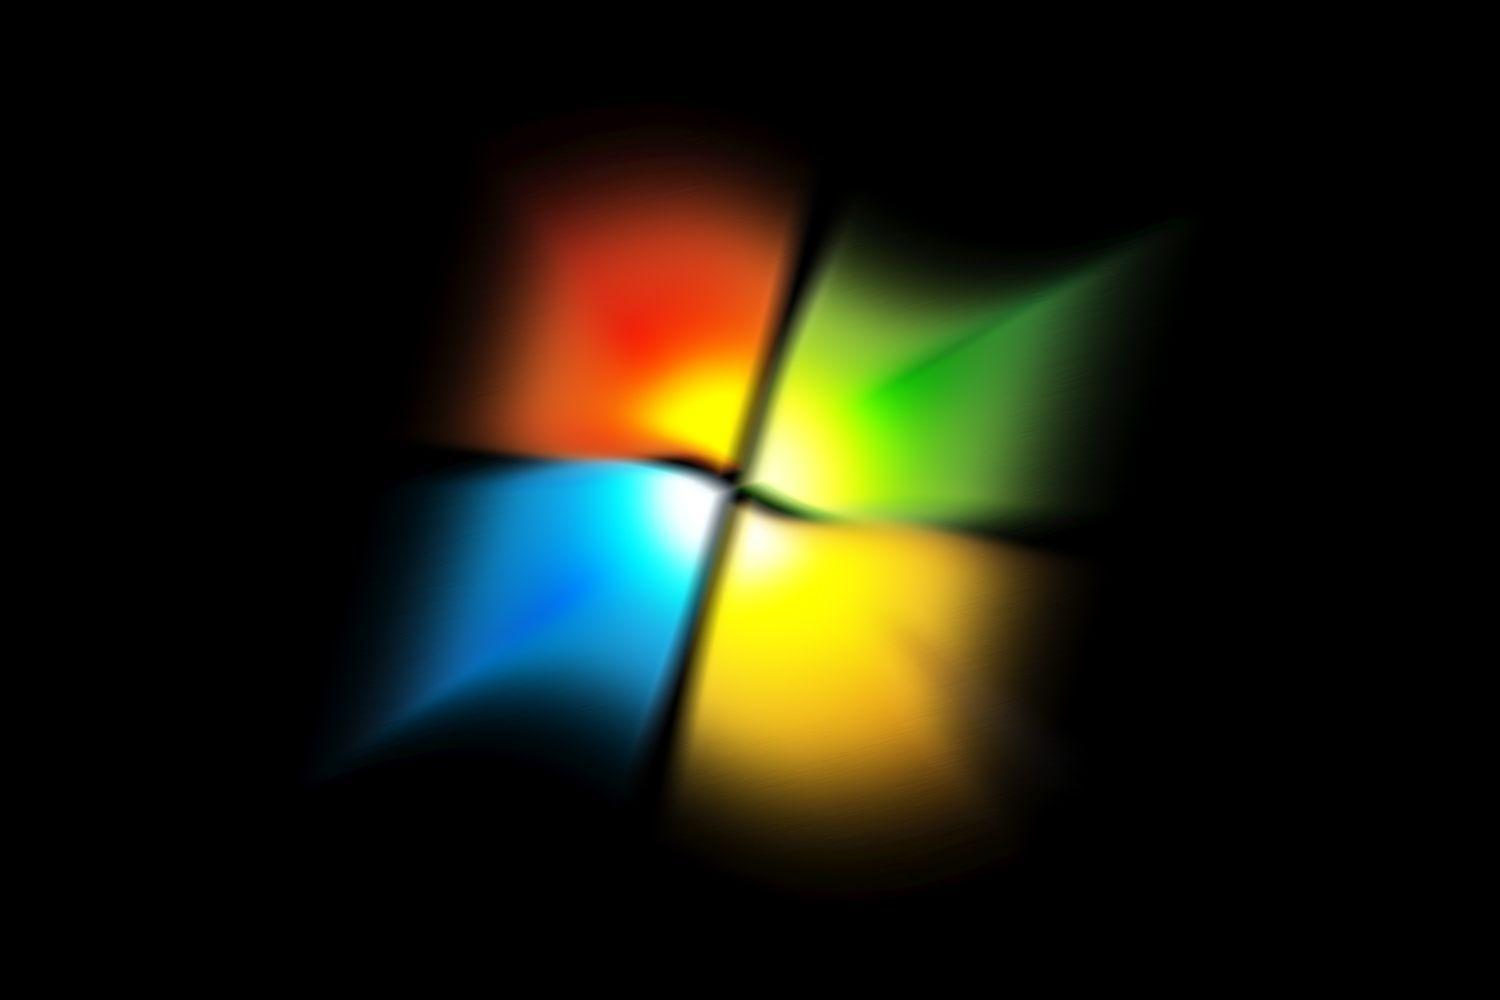 Windows + 7 backgrounds logo 8a by VikumG712